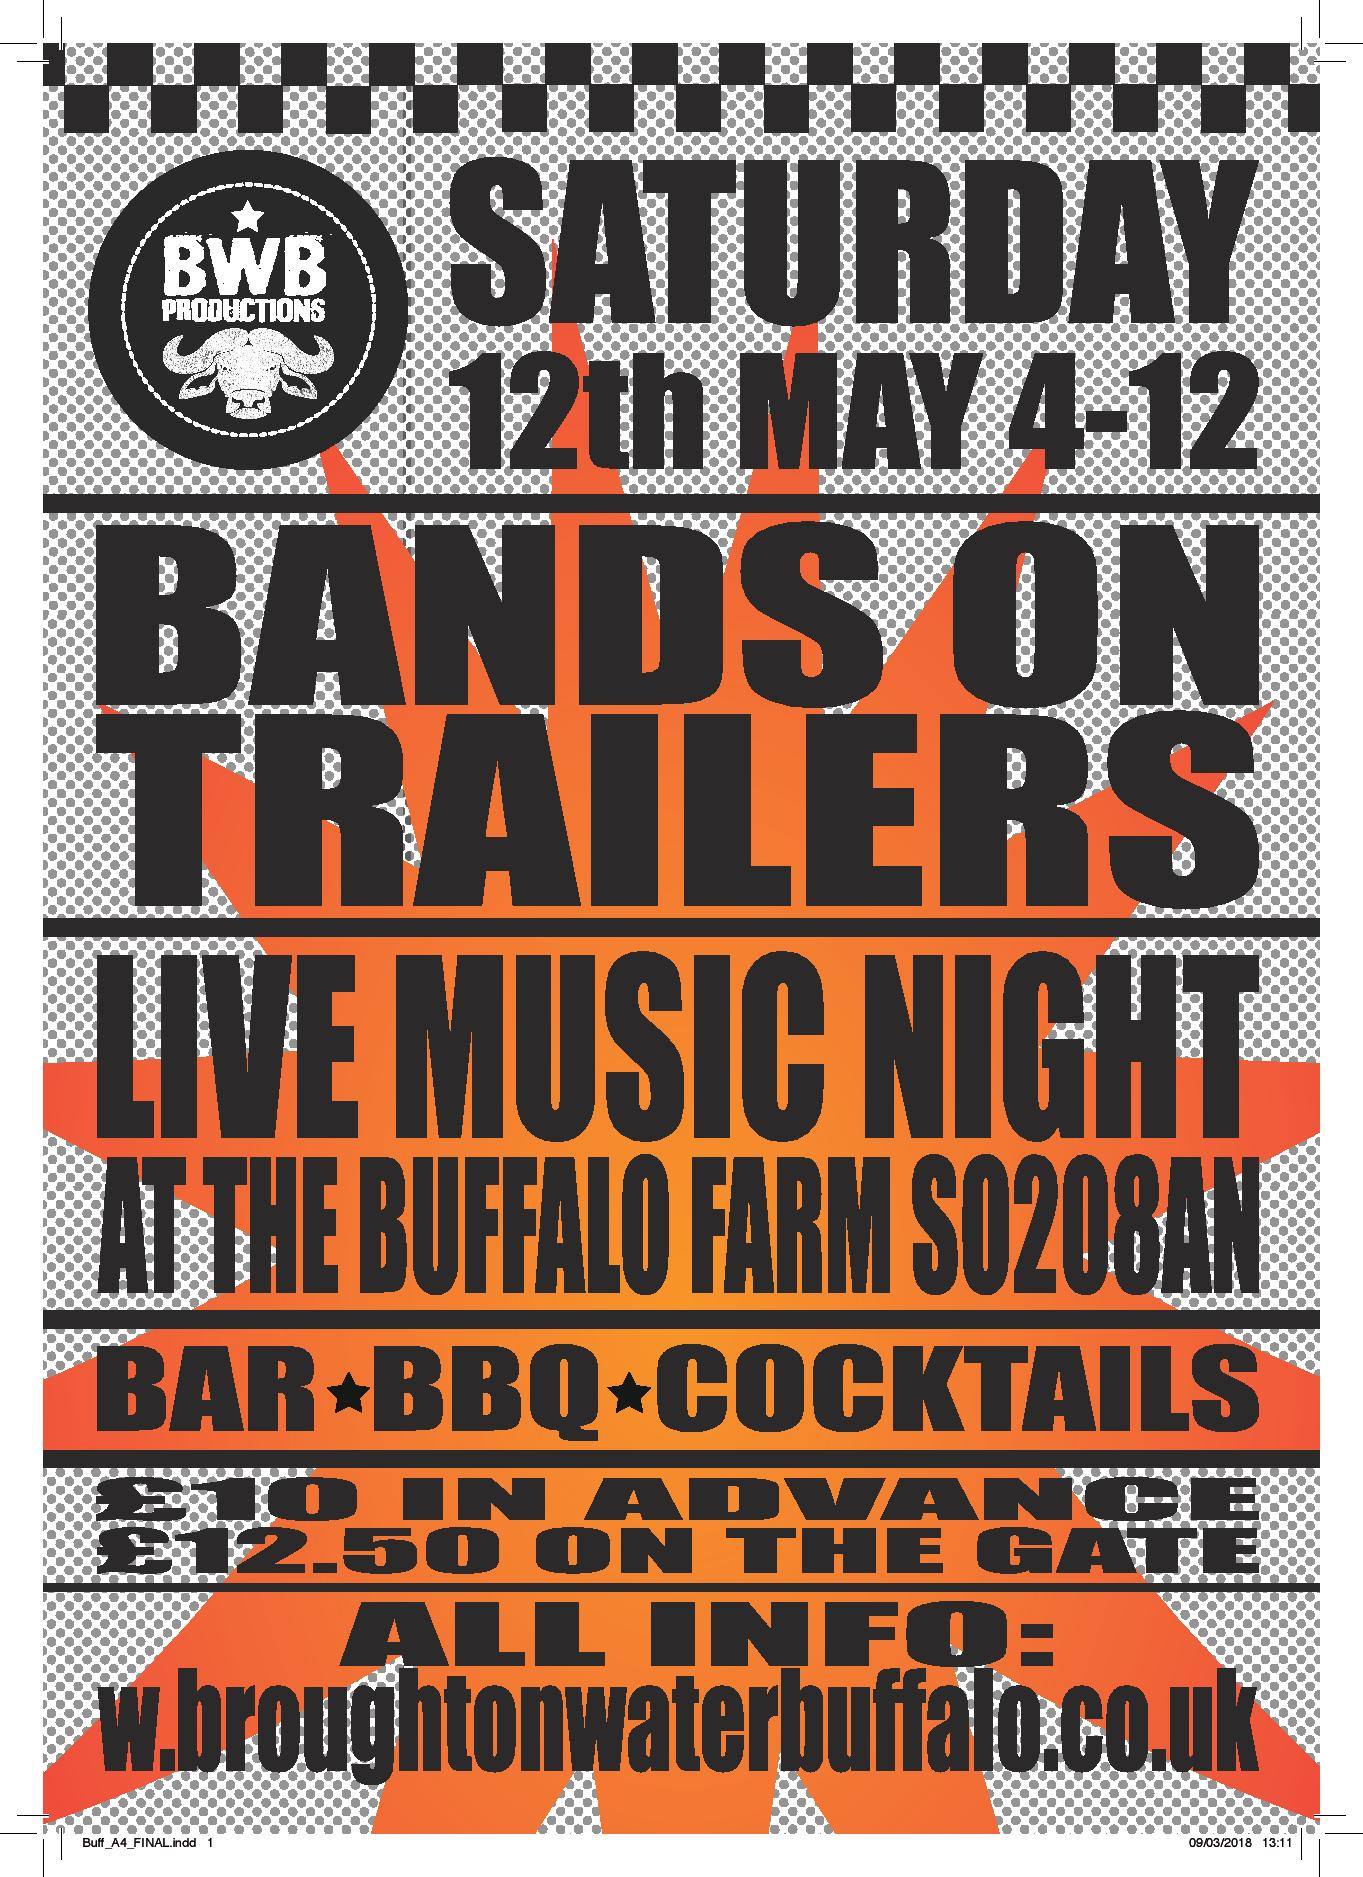 Bands on Trailers - Music Night